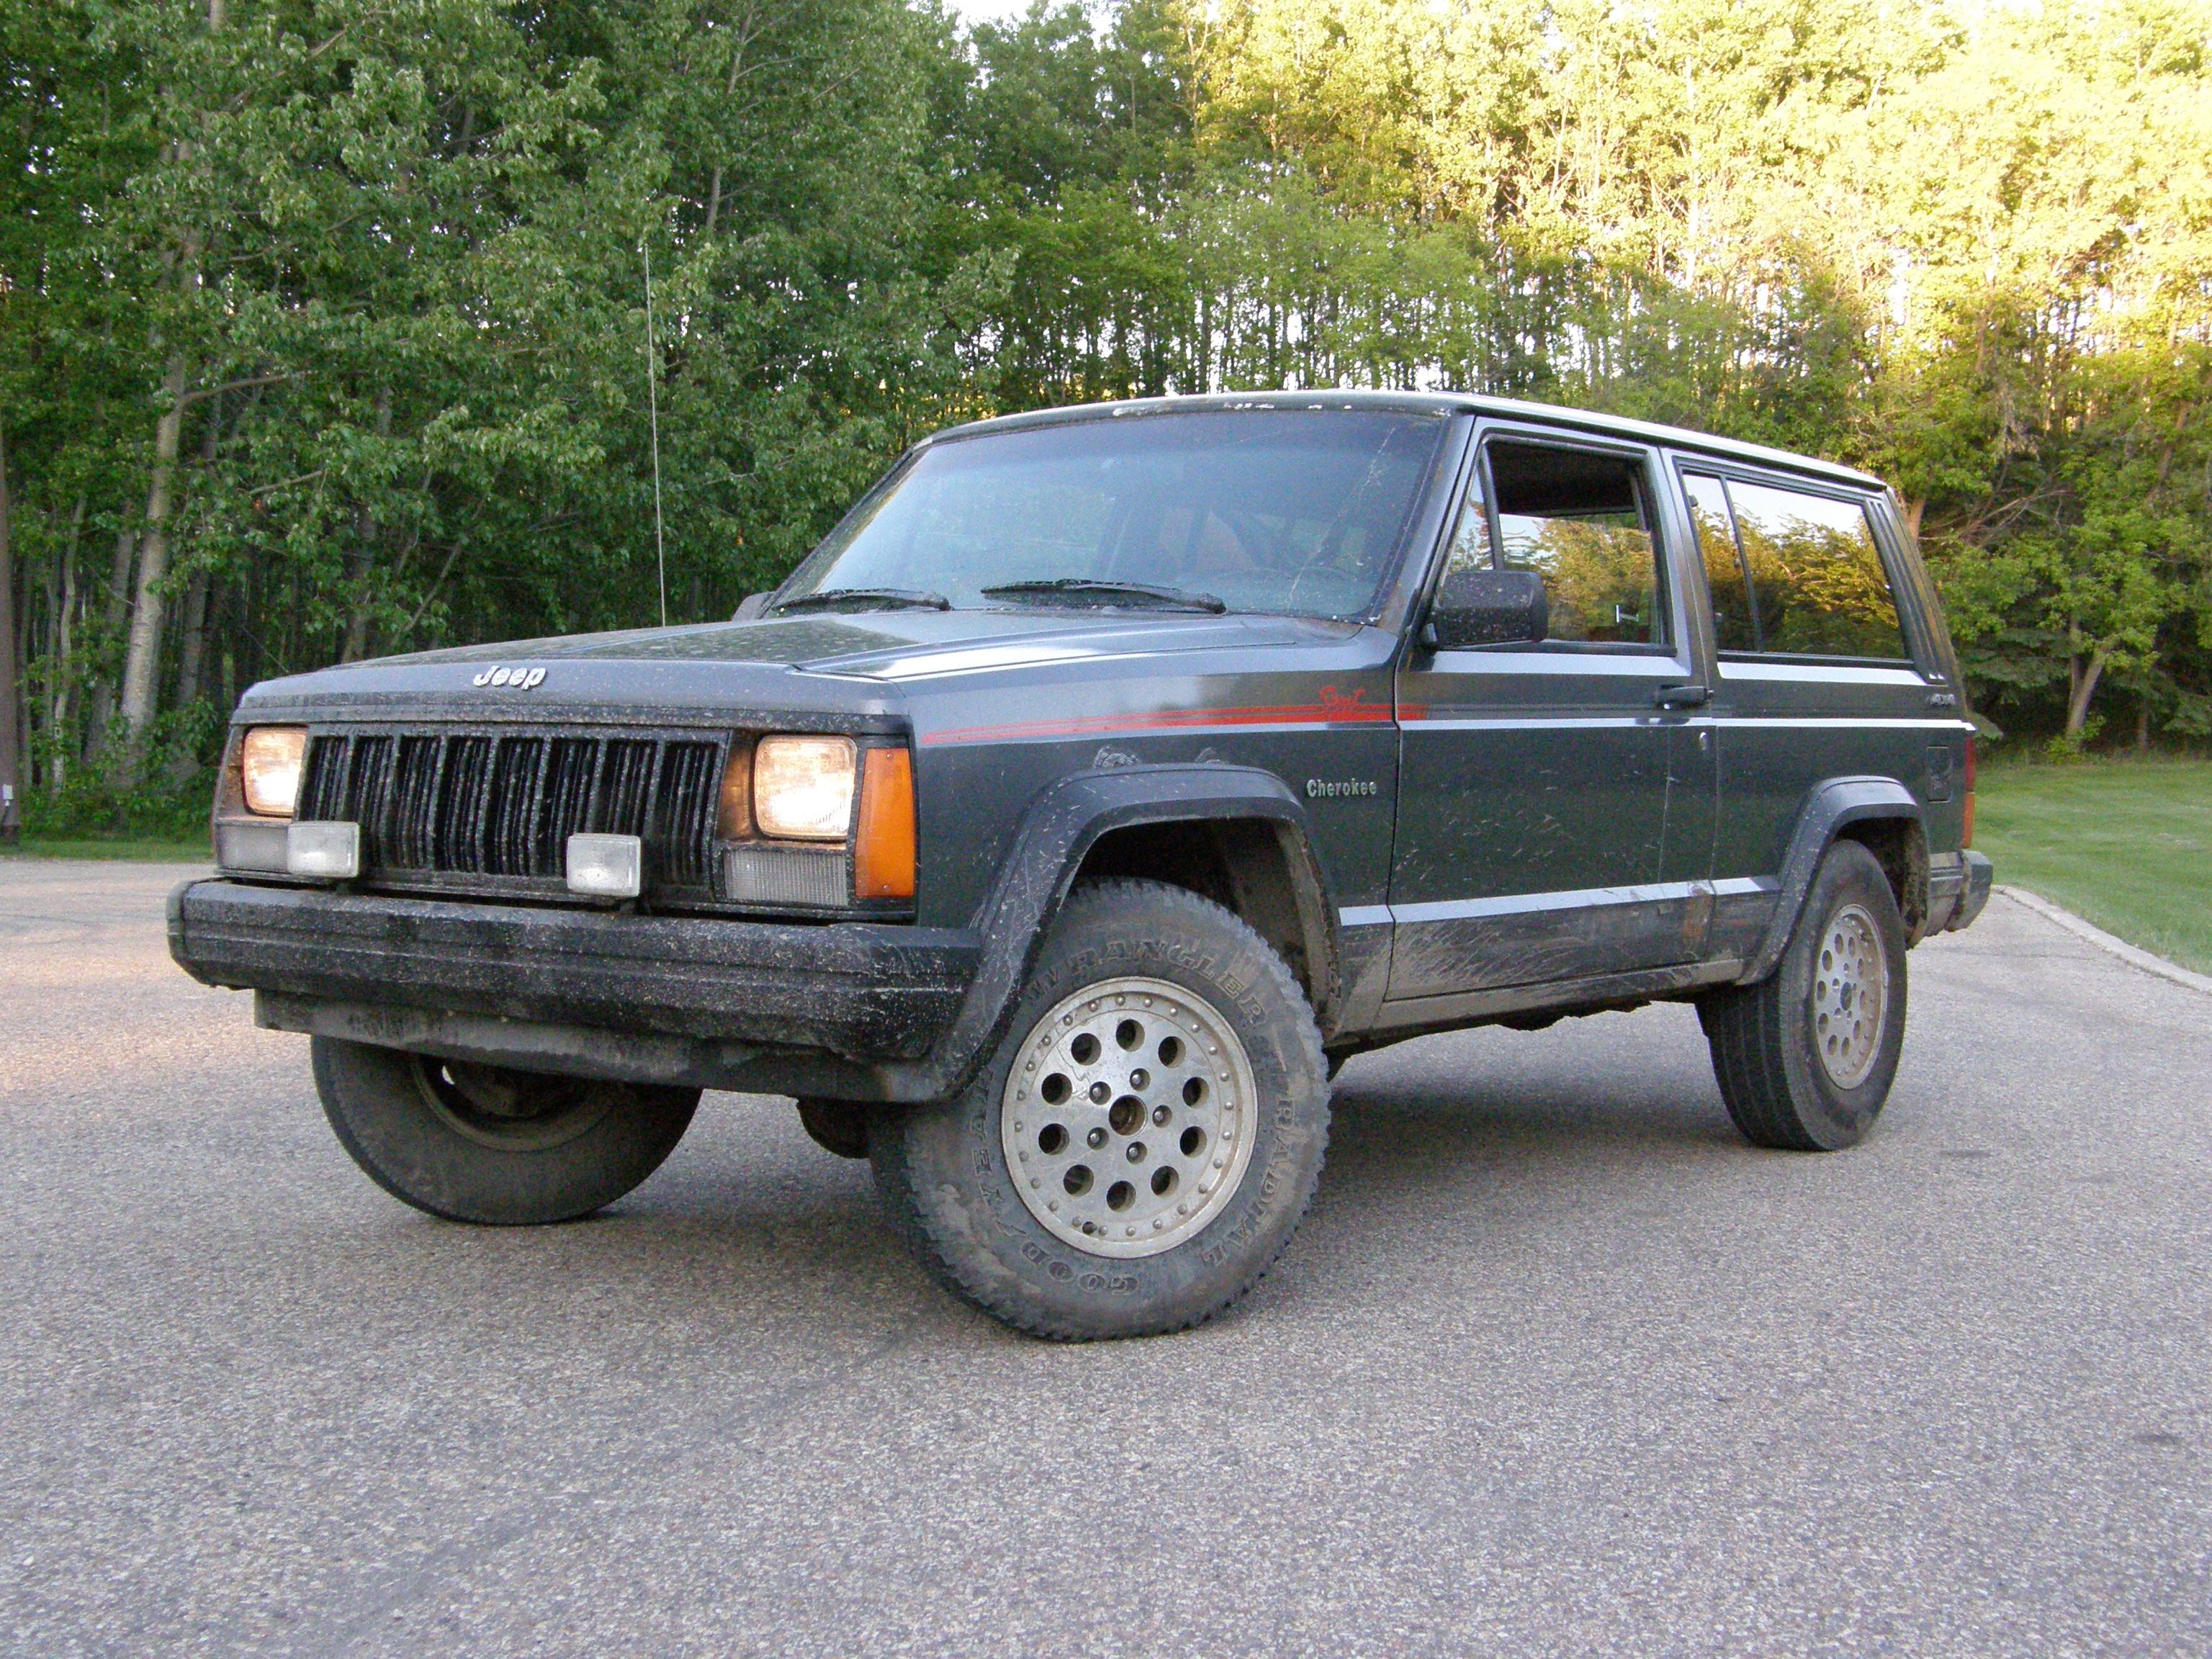 pushittillitdies 1990 jeep cherokeesport utility 2d specs photos modification info at cardomain. Black Bedroom Furniture Sets. Home Design Ideas